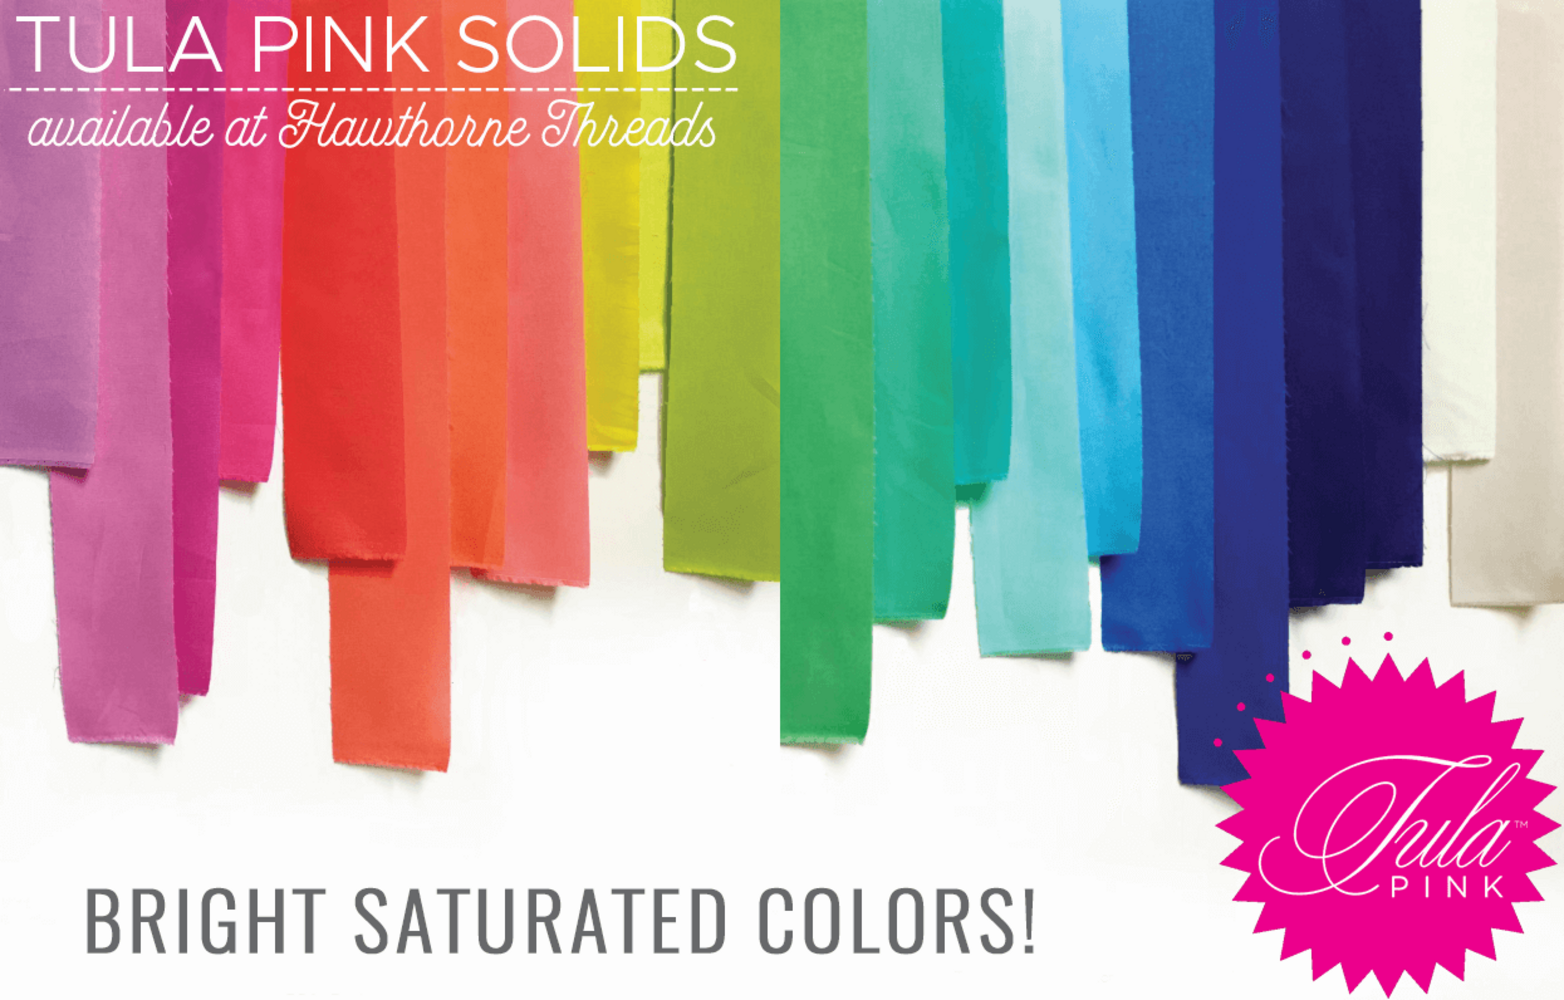 Tula Pink Solids Poster Image